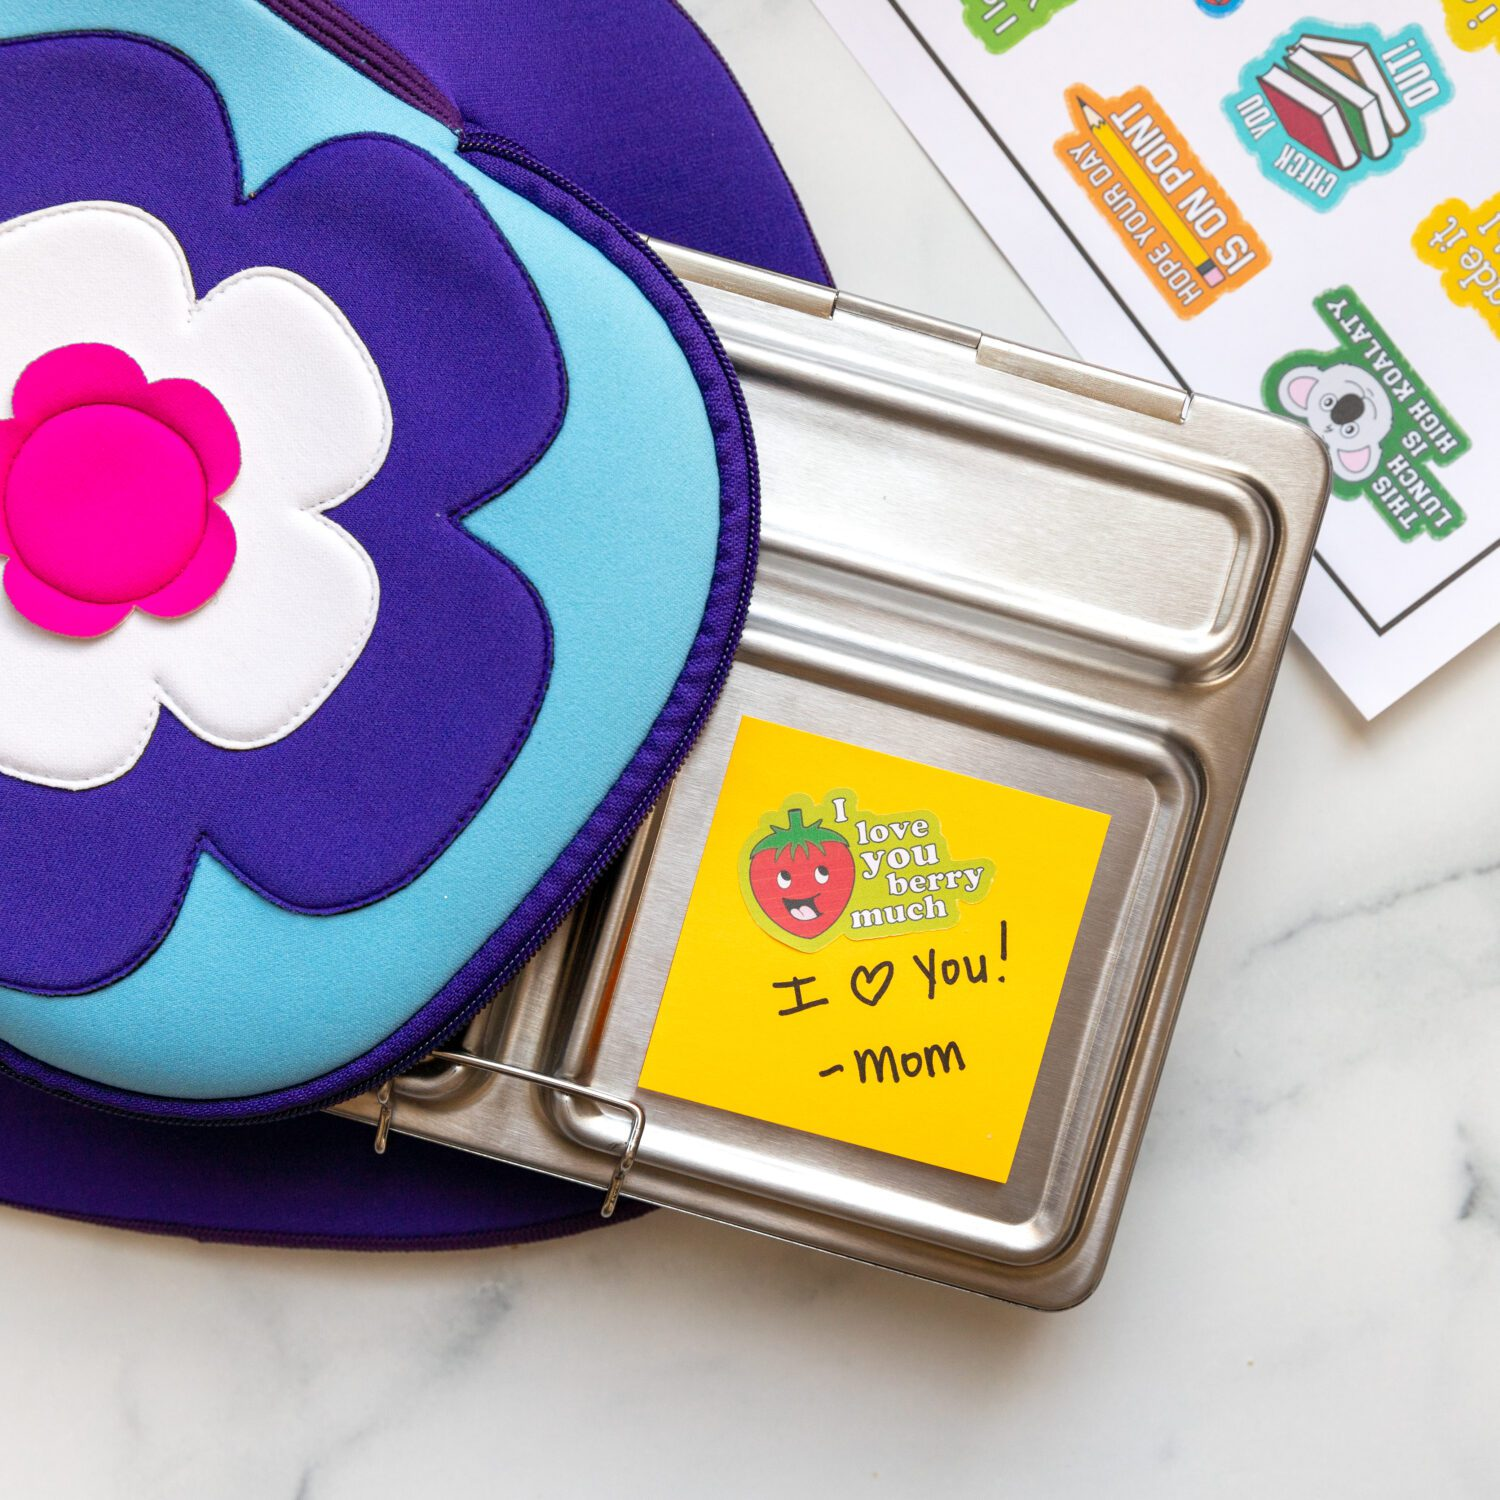 lunchbox with a post it note and a sheet of lunchbox stickers